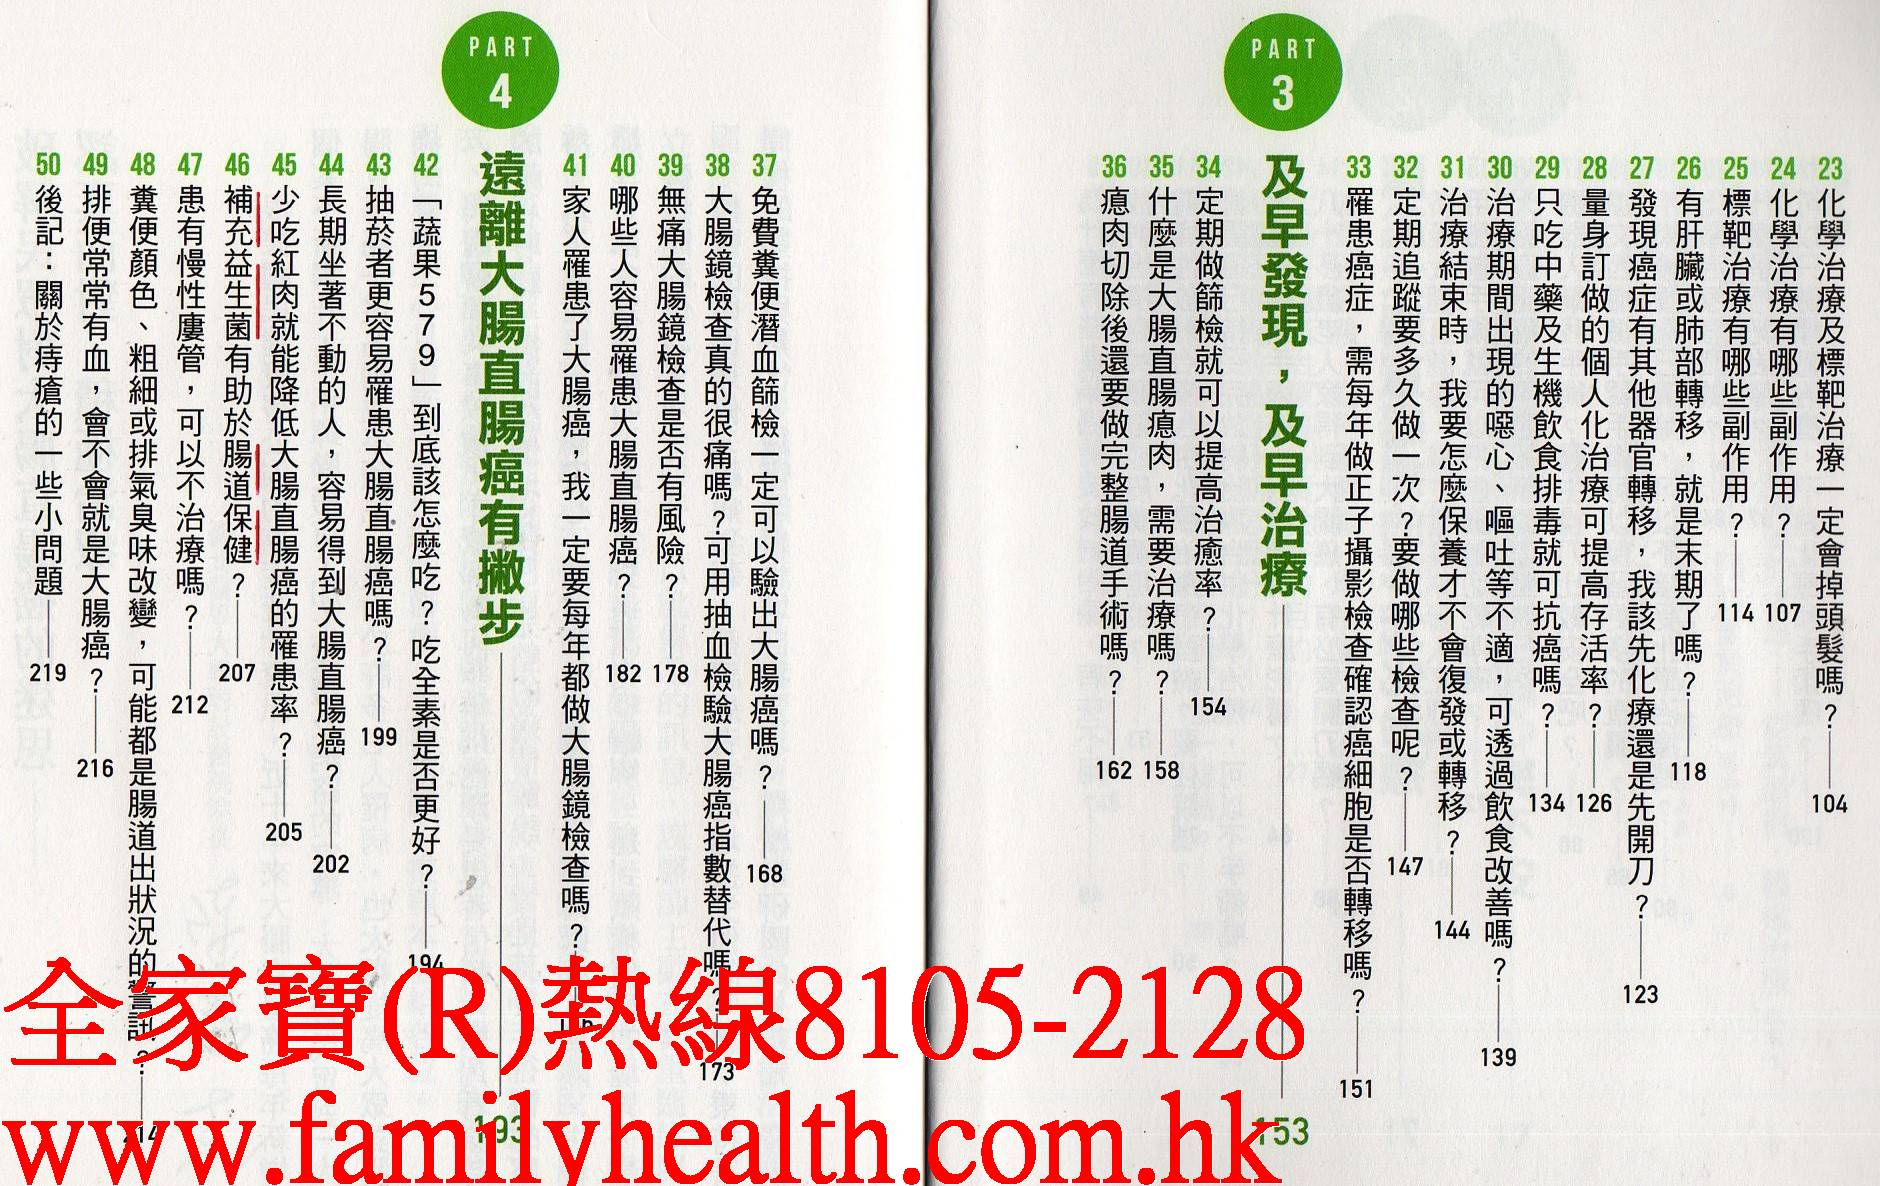 http://www.familyhealth.com.hk/files/full/1163_2.jpg